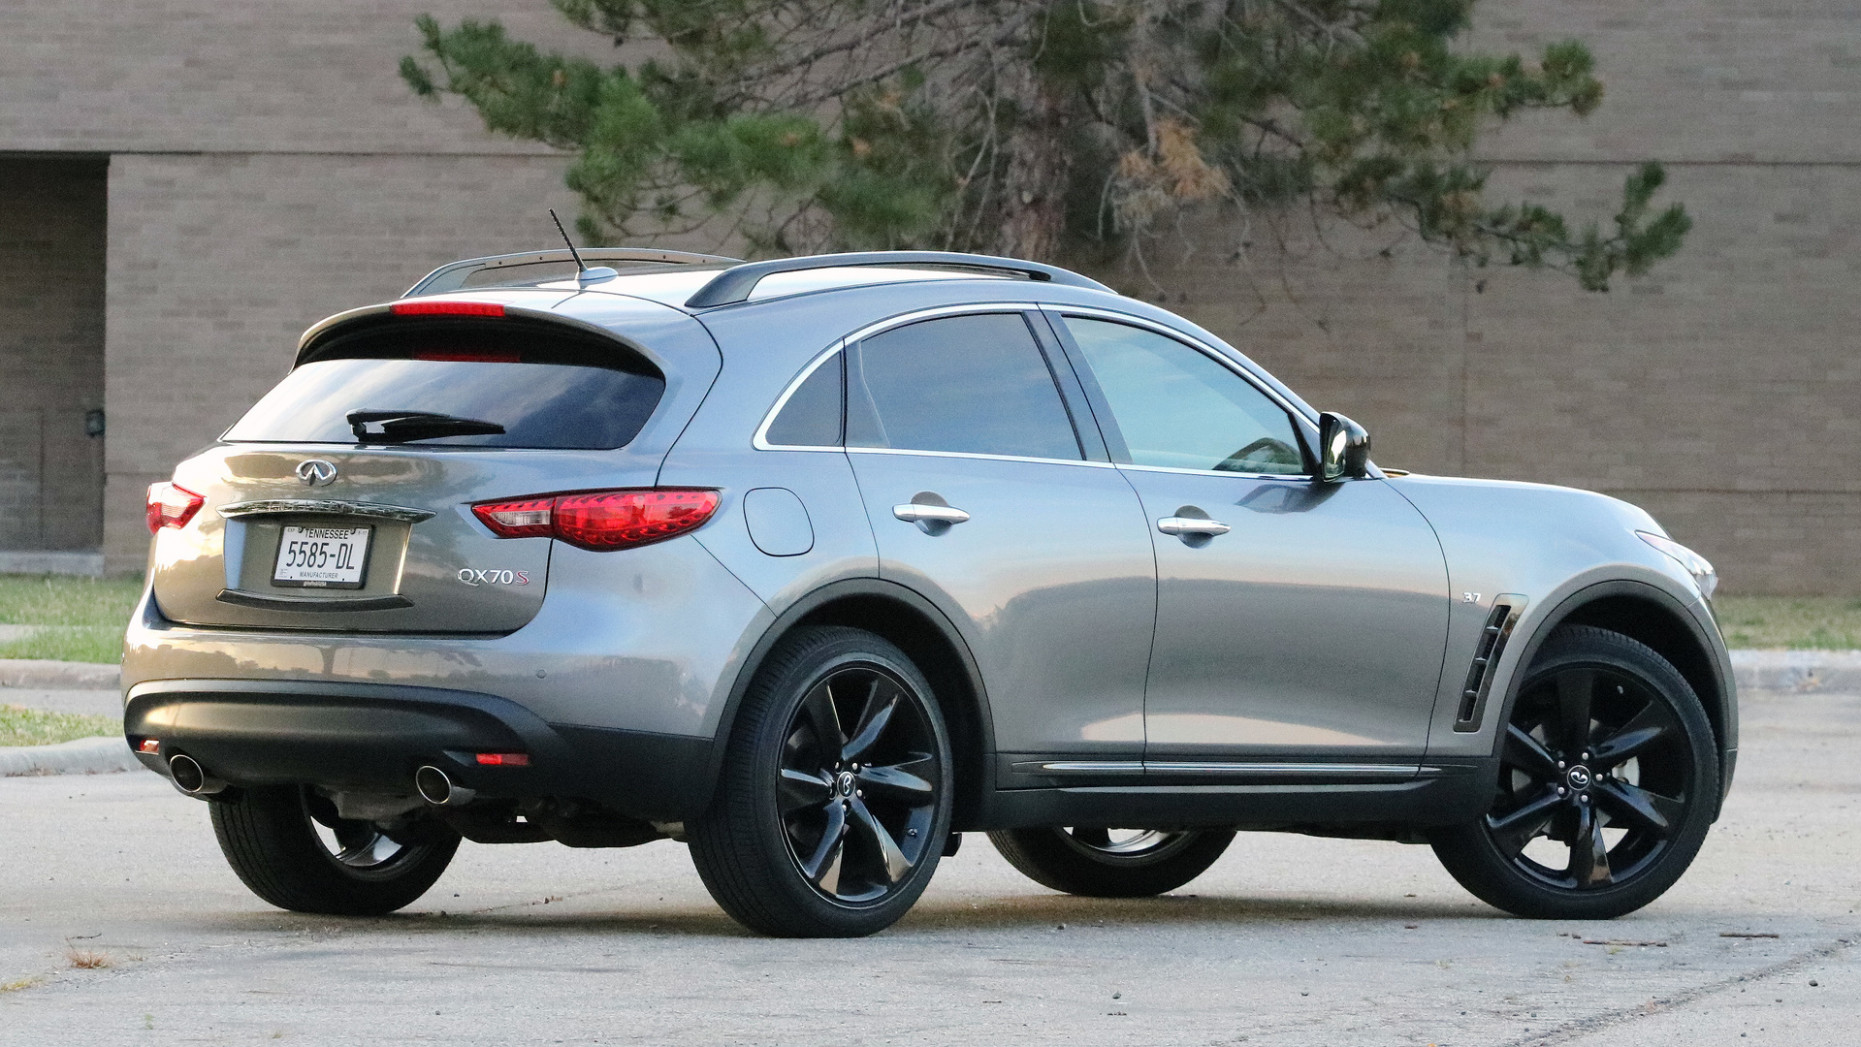 Spy Shoot 2022 Infiniti QX70